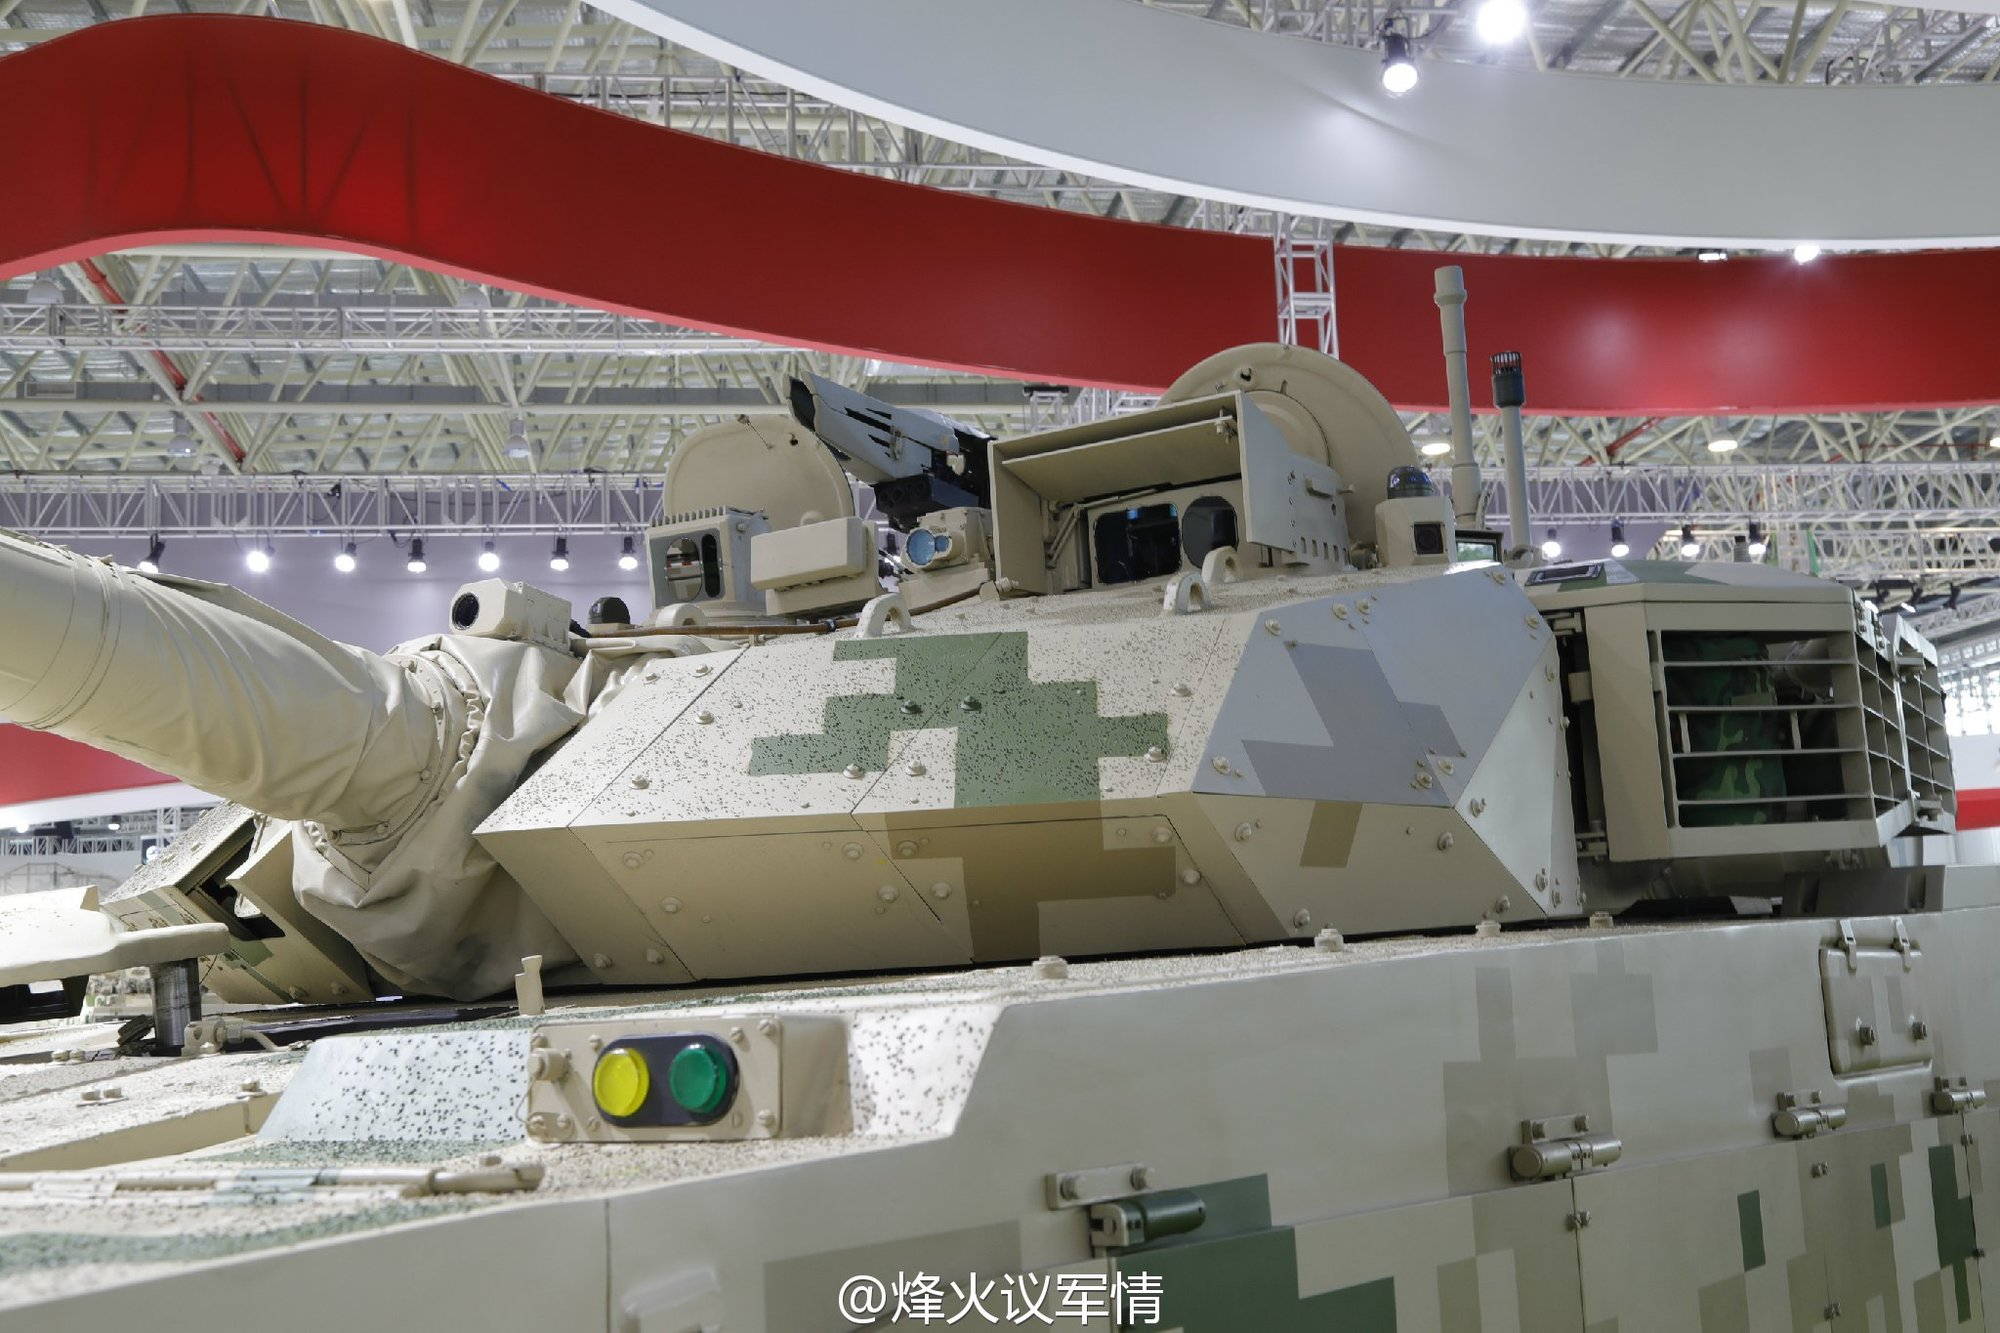 China People's Liberation Army (PLA): Photos and Videos - Page 3 30081320484_9694555847_o_d